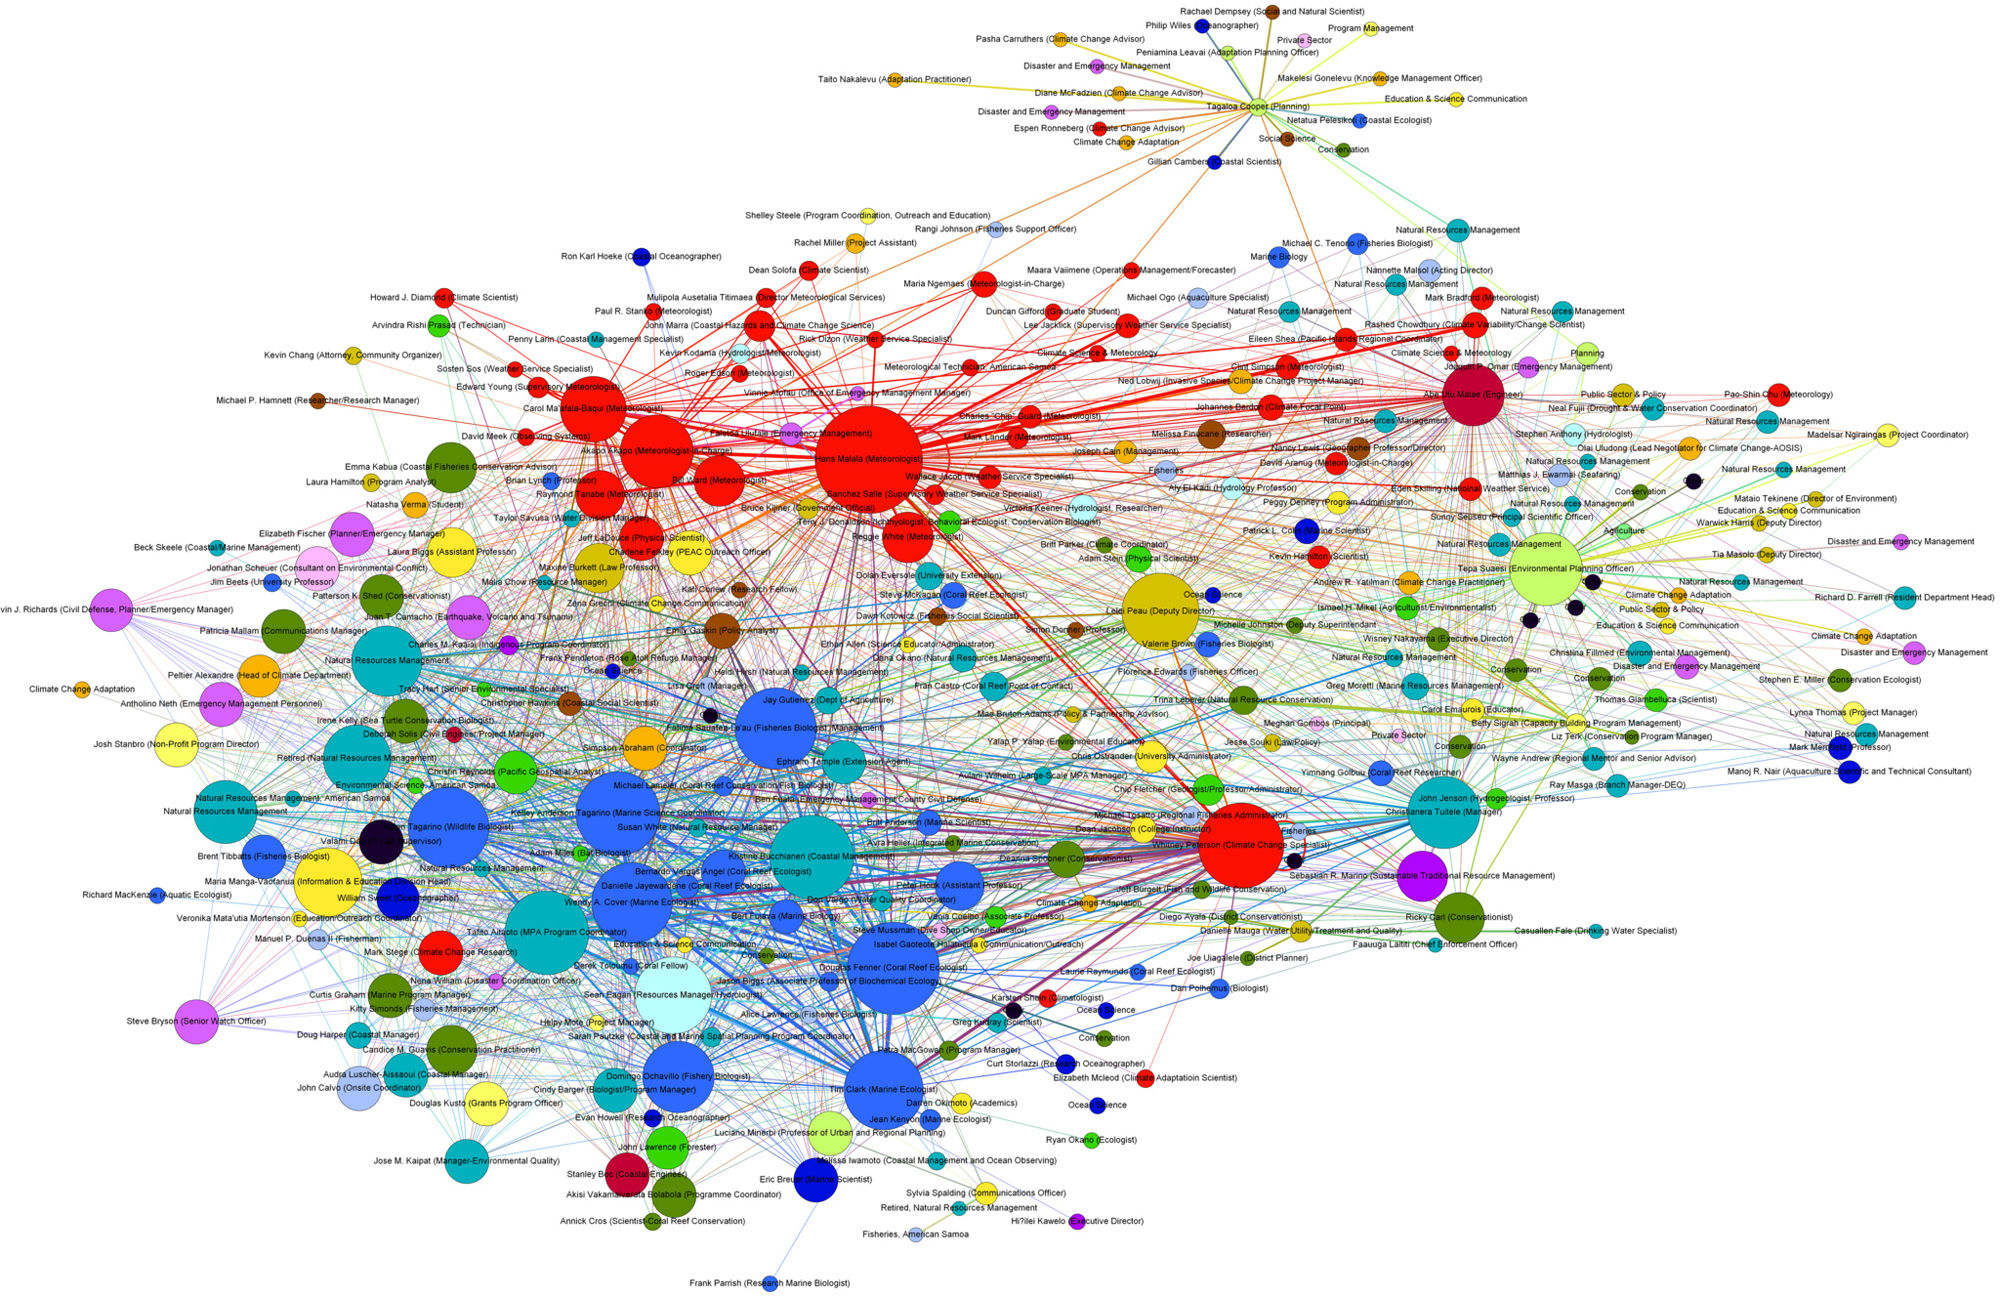 using social network analysis to assess communications and develop networking tools among